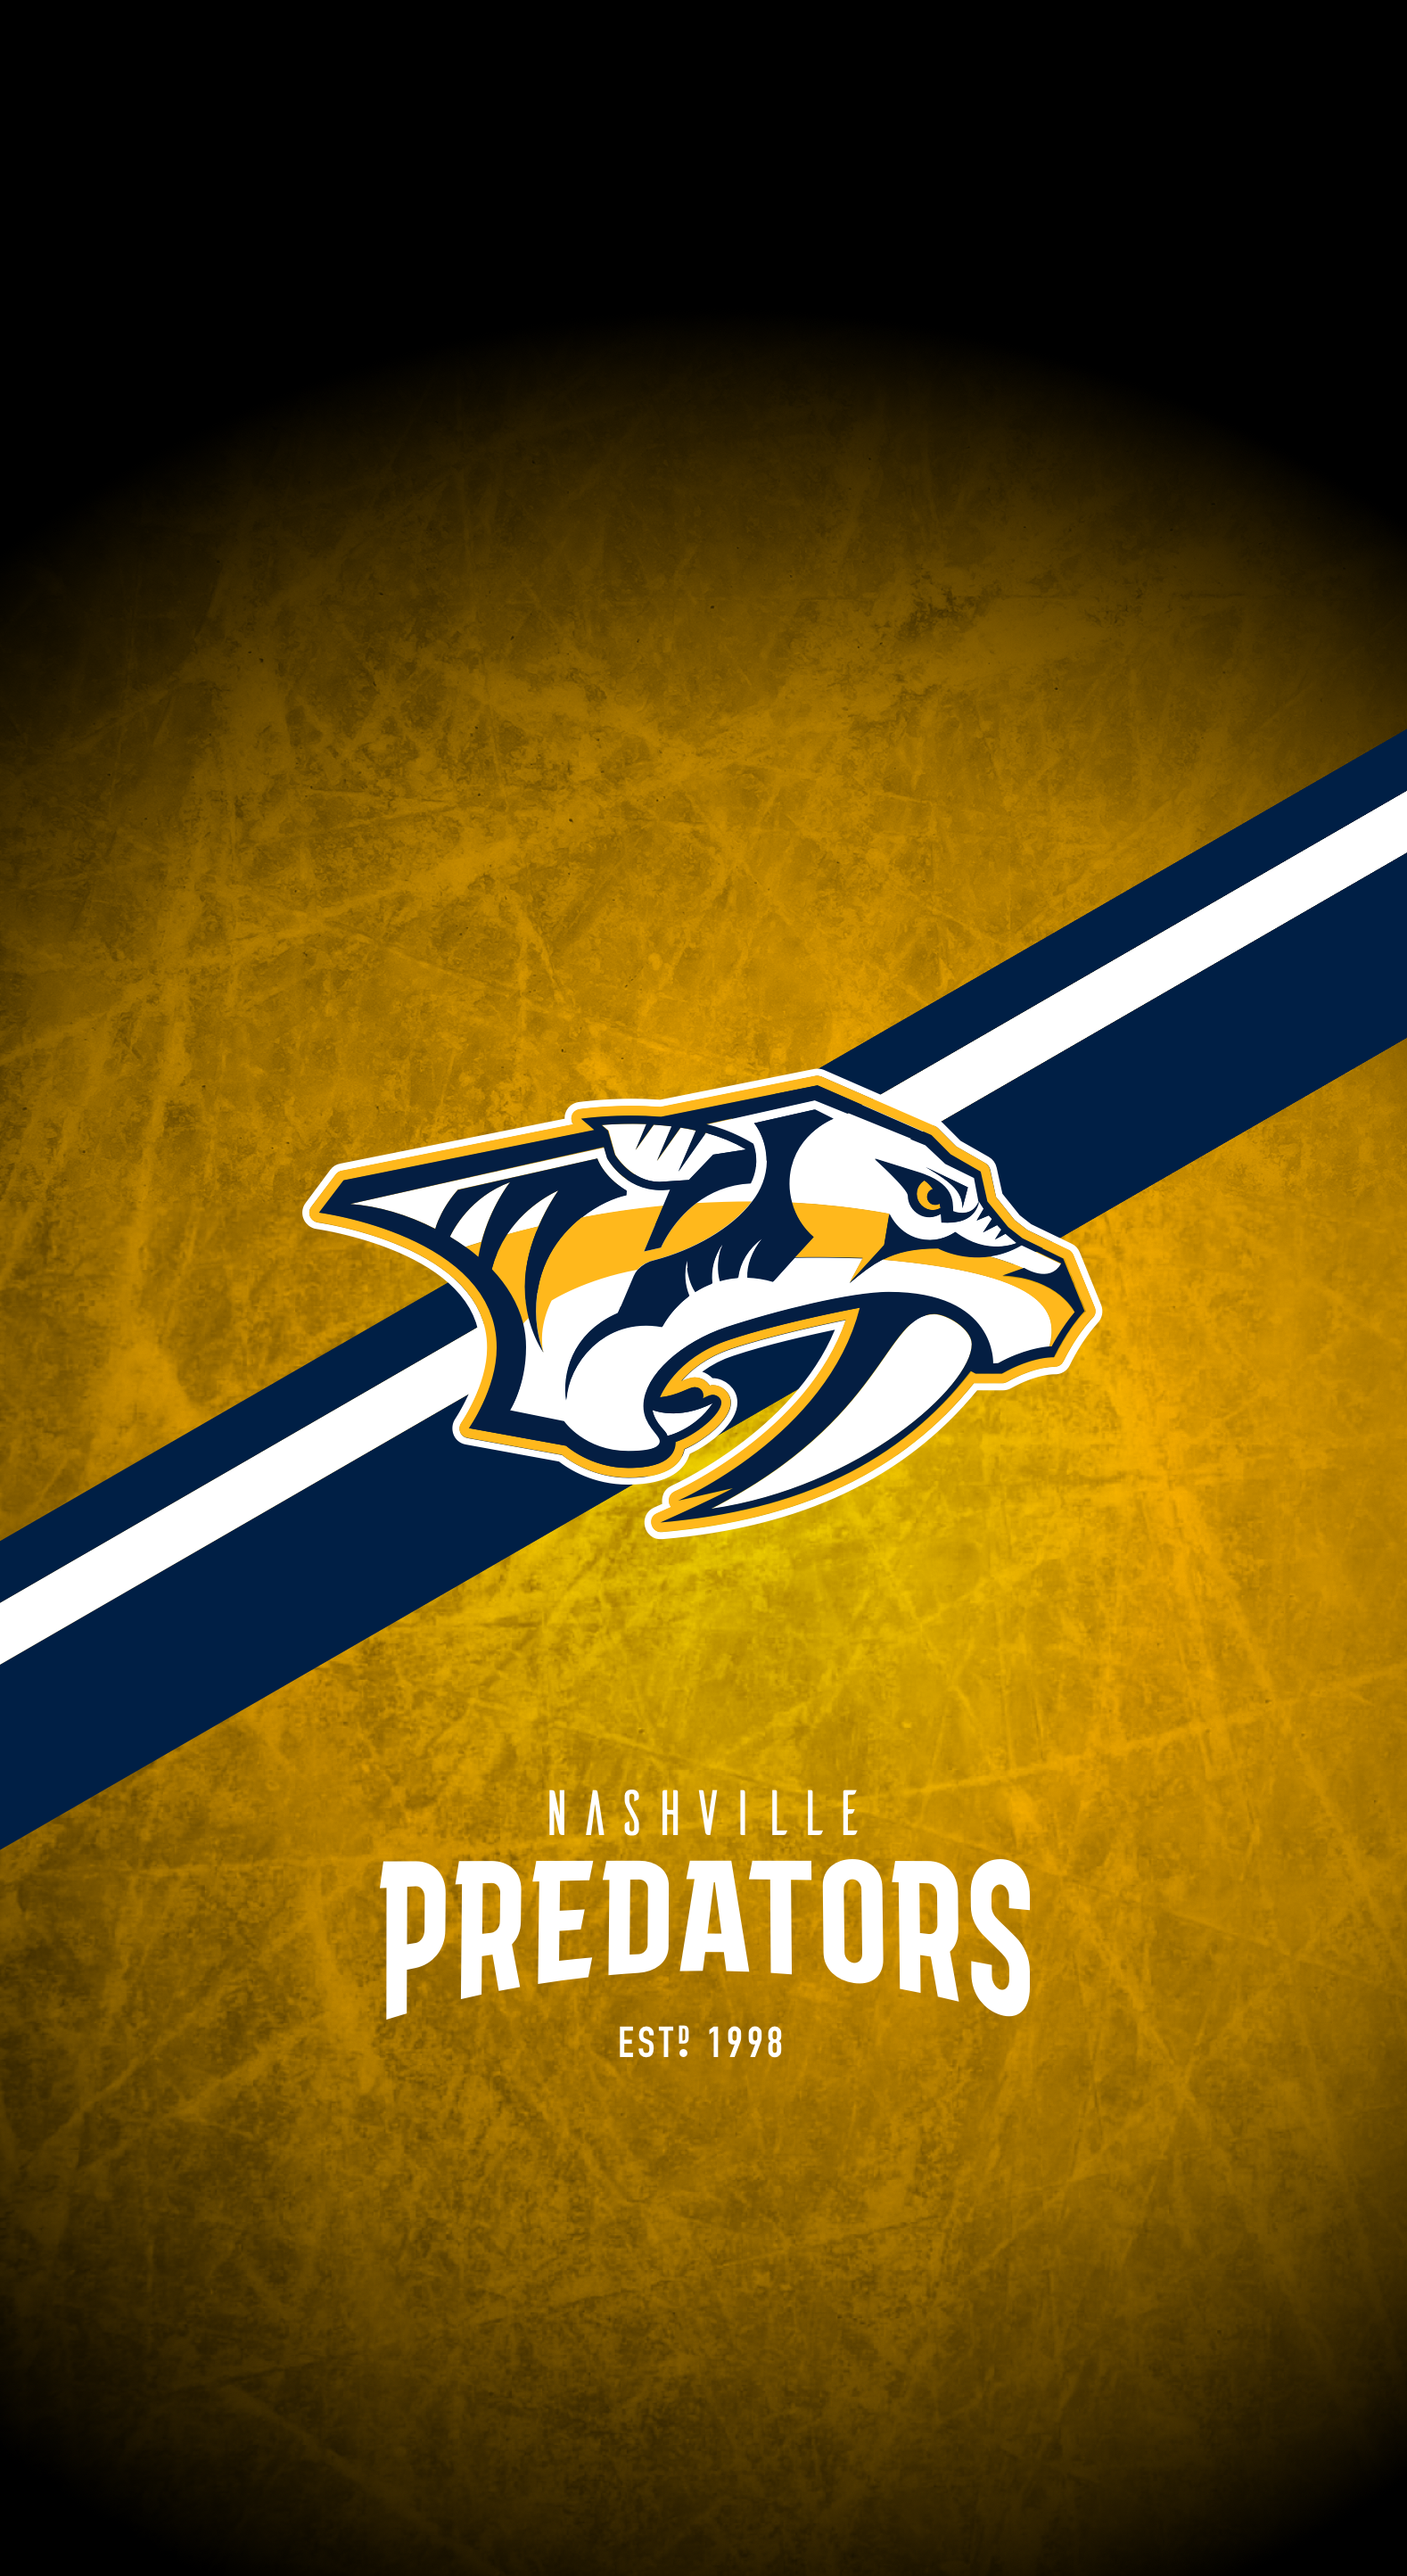 Nashville Predators (NHL) iPhone X/XS/XR Lock Screen